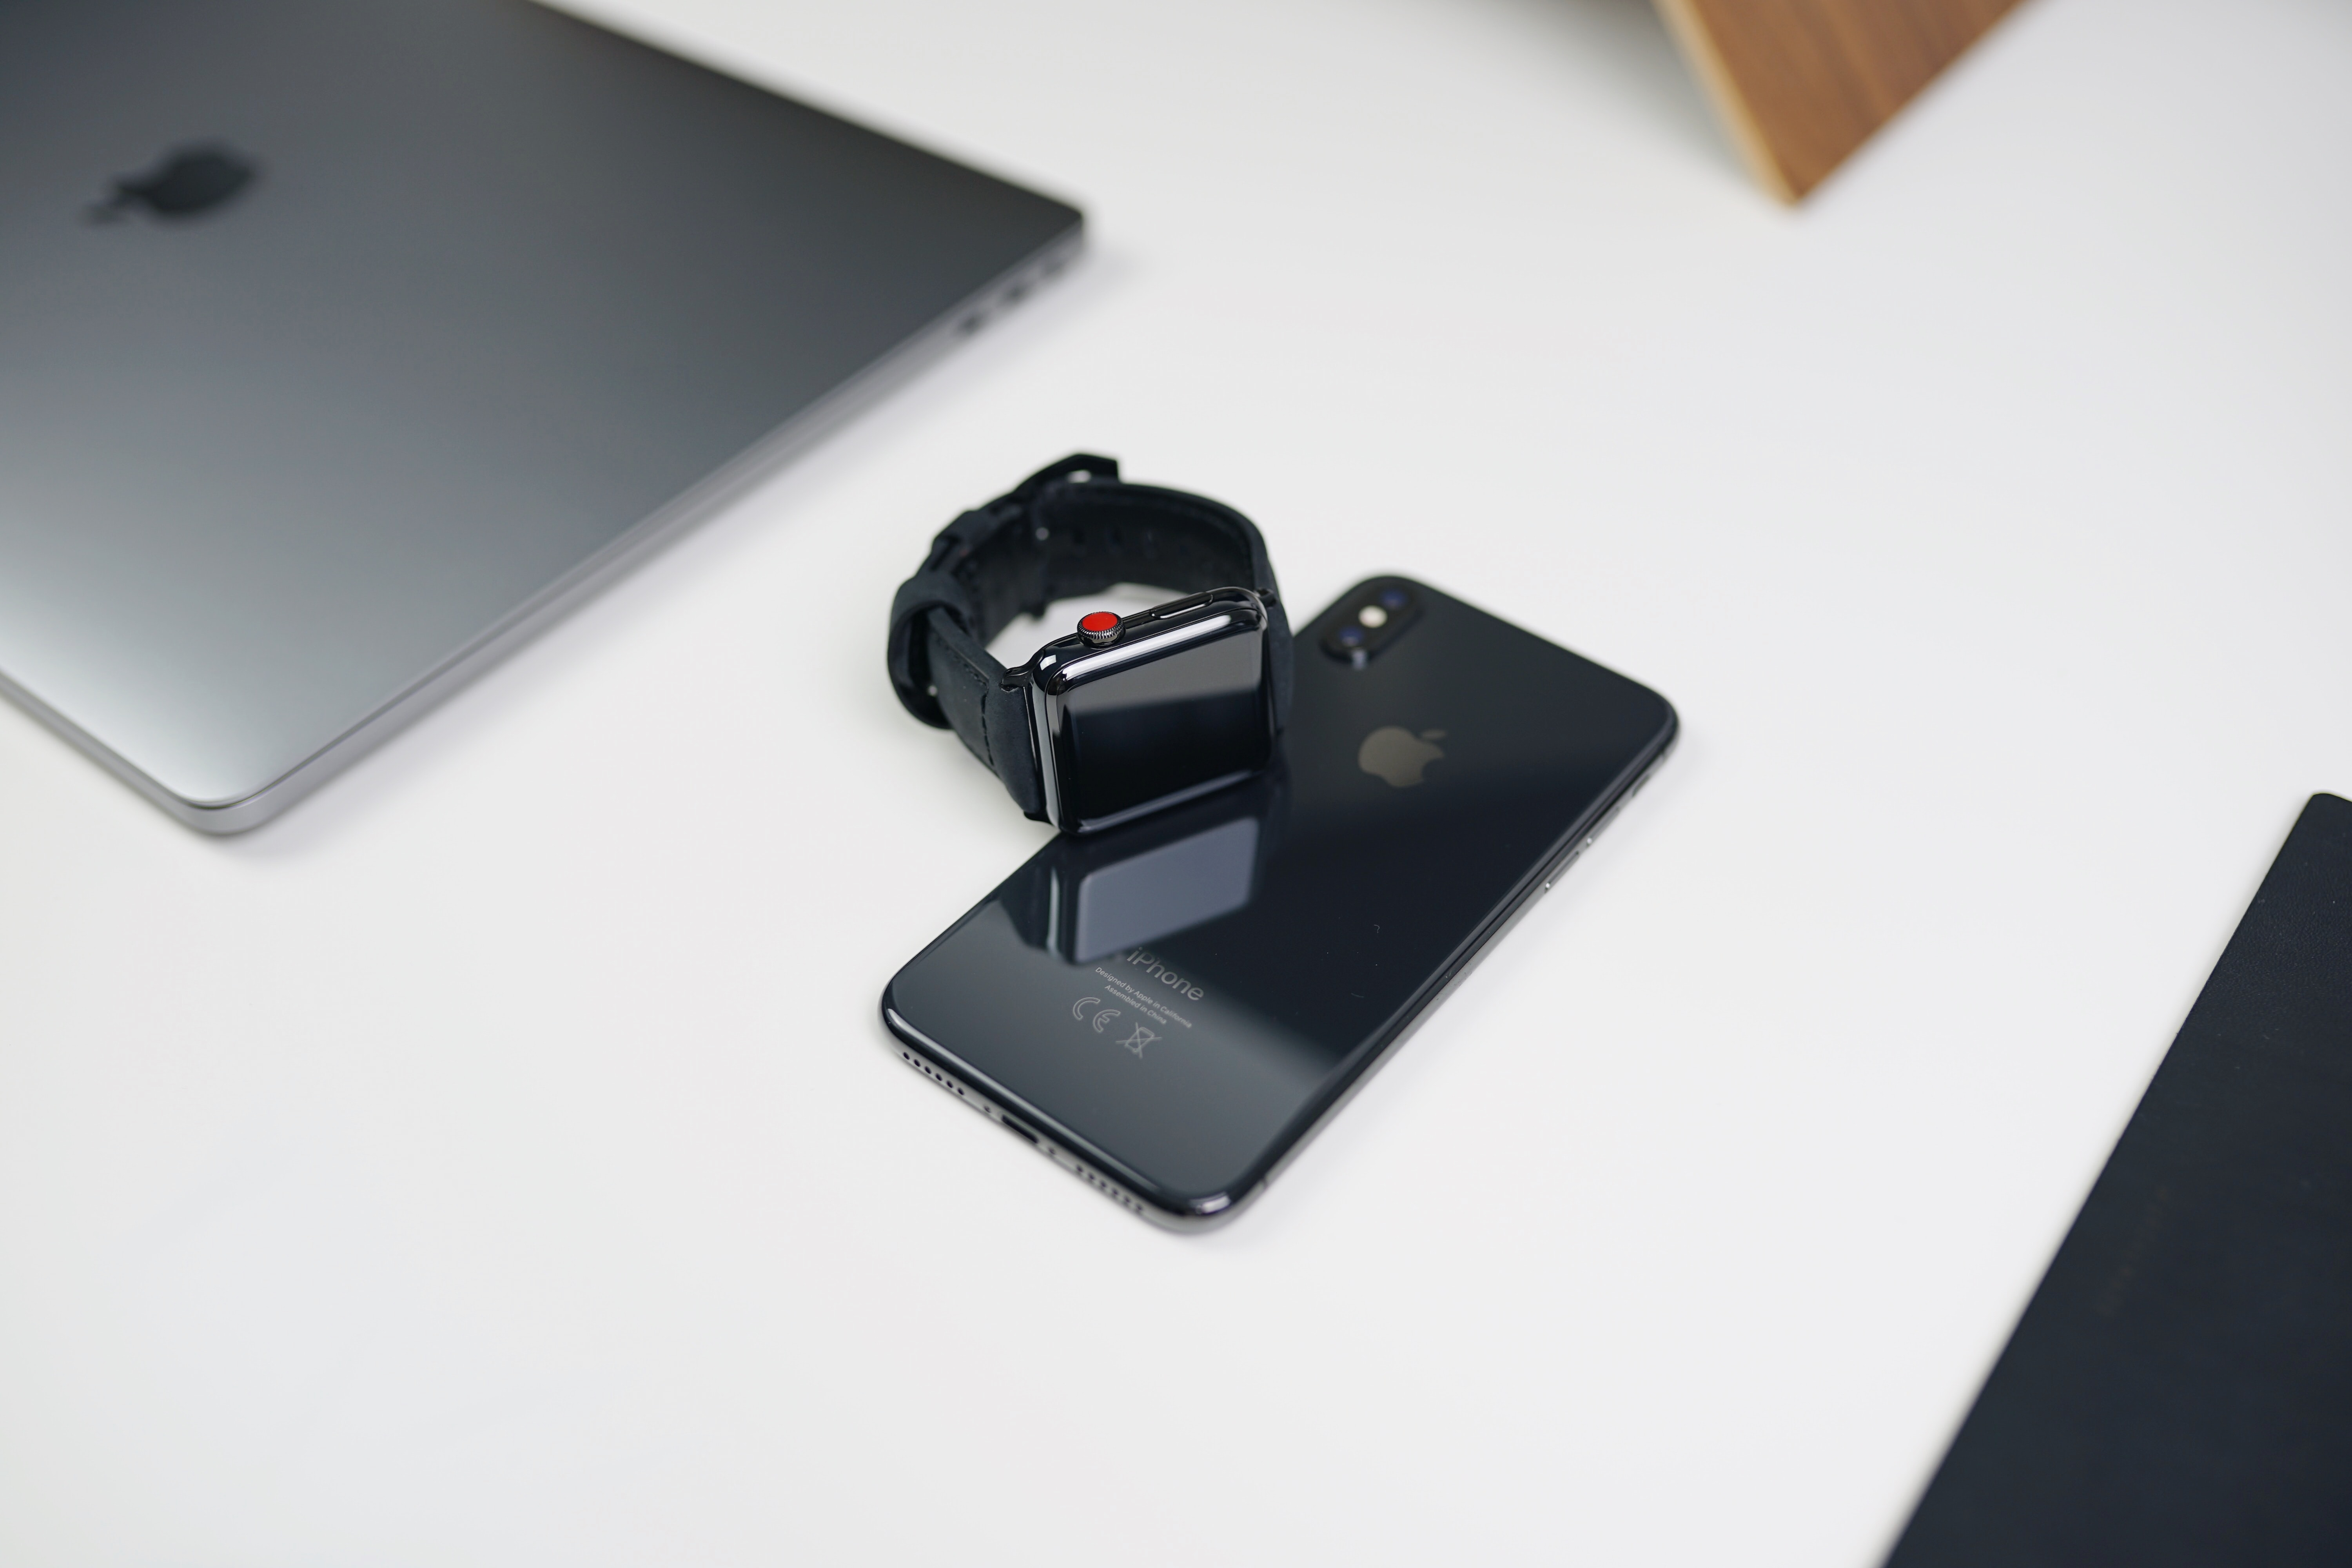 space gray aluminum case Apple Watch with black Sport Band on space gray iPhone X beside silver MacBook